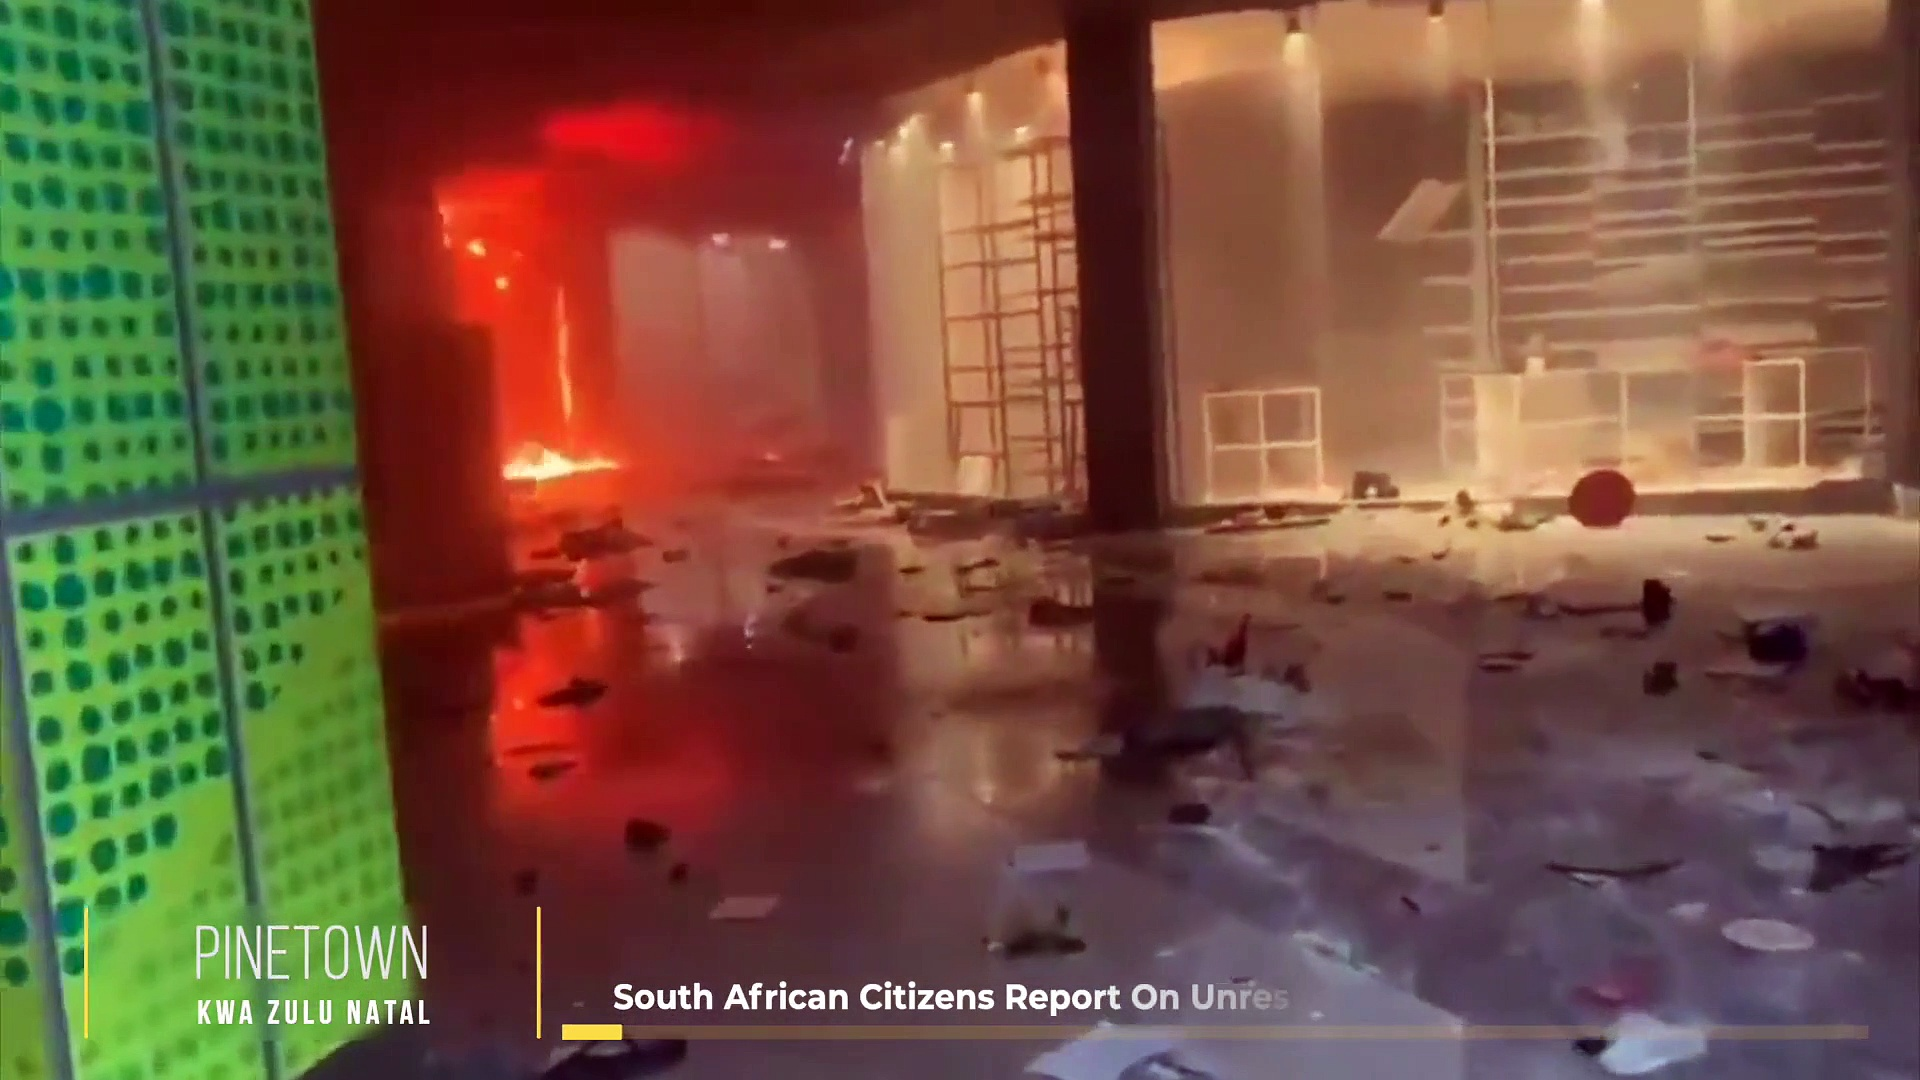 South African Citizens Report On Unrest _ News South Africa